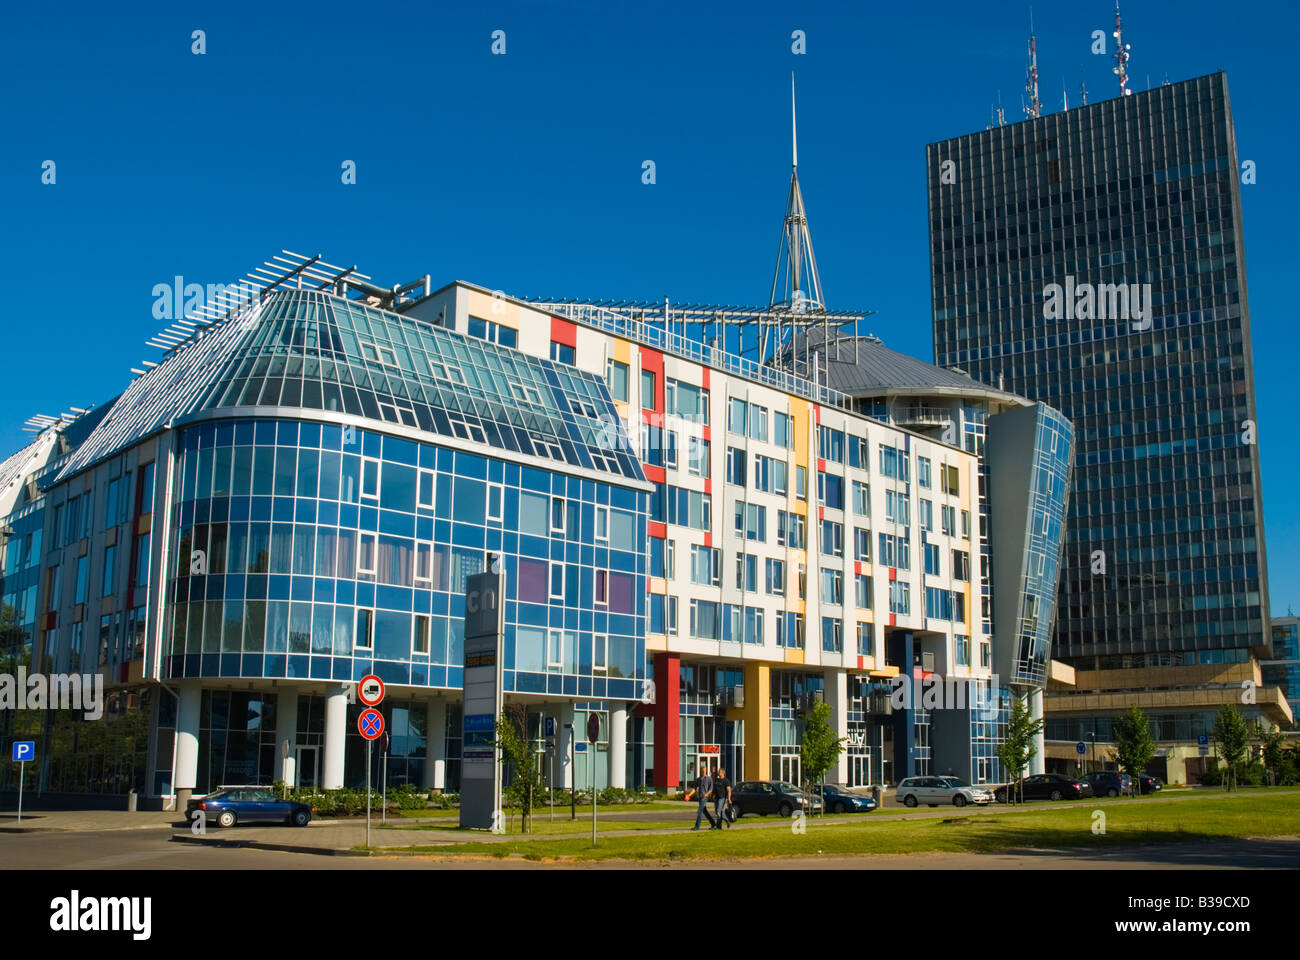 Modern Architecture By The River In Riga Latvia Europe